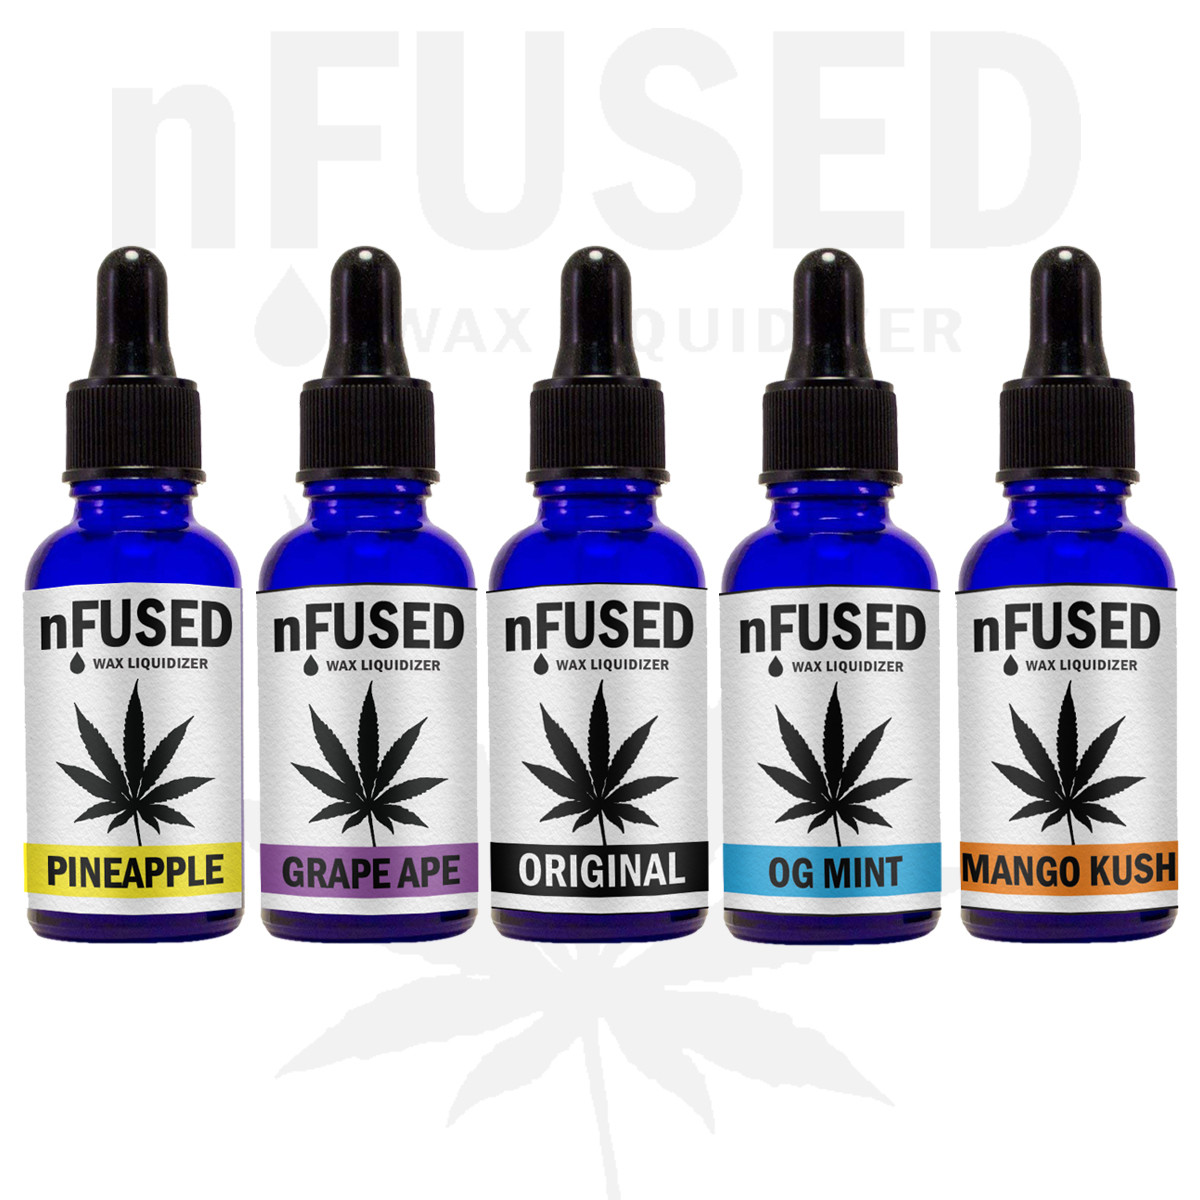 NFUSED WAX LIQUIDIZER VARIOUS FLAVOURS